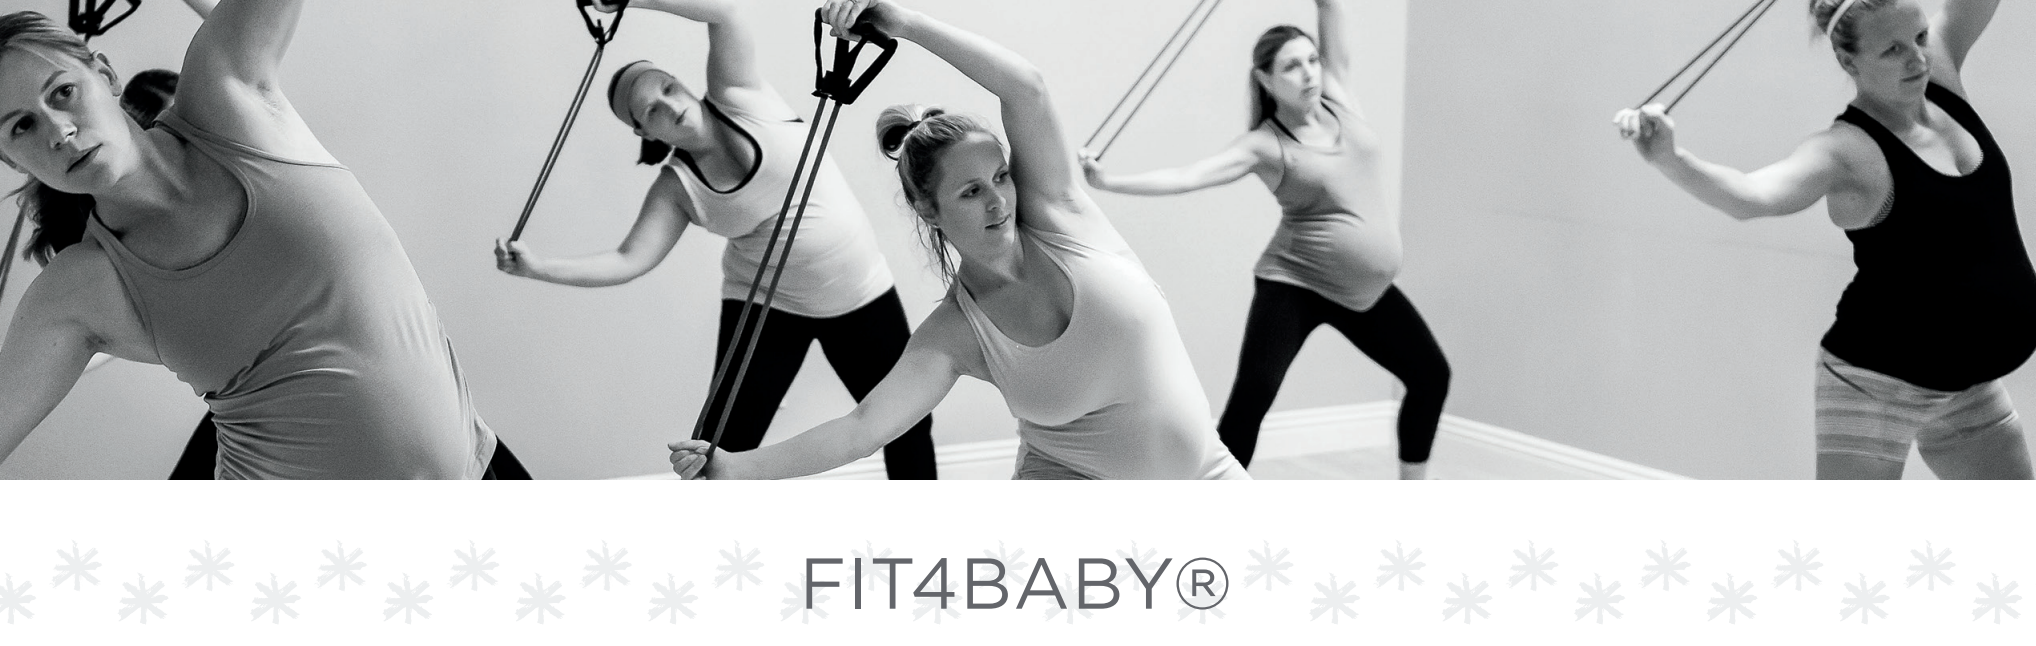 fit4baby header 2.png